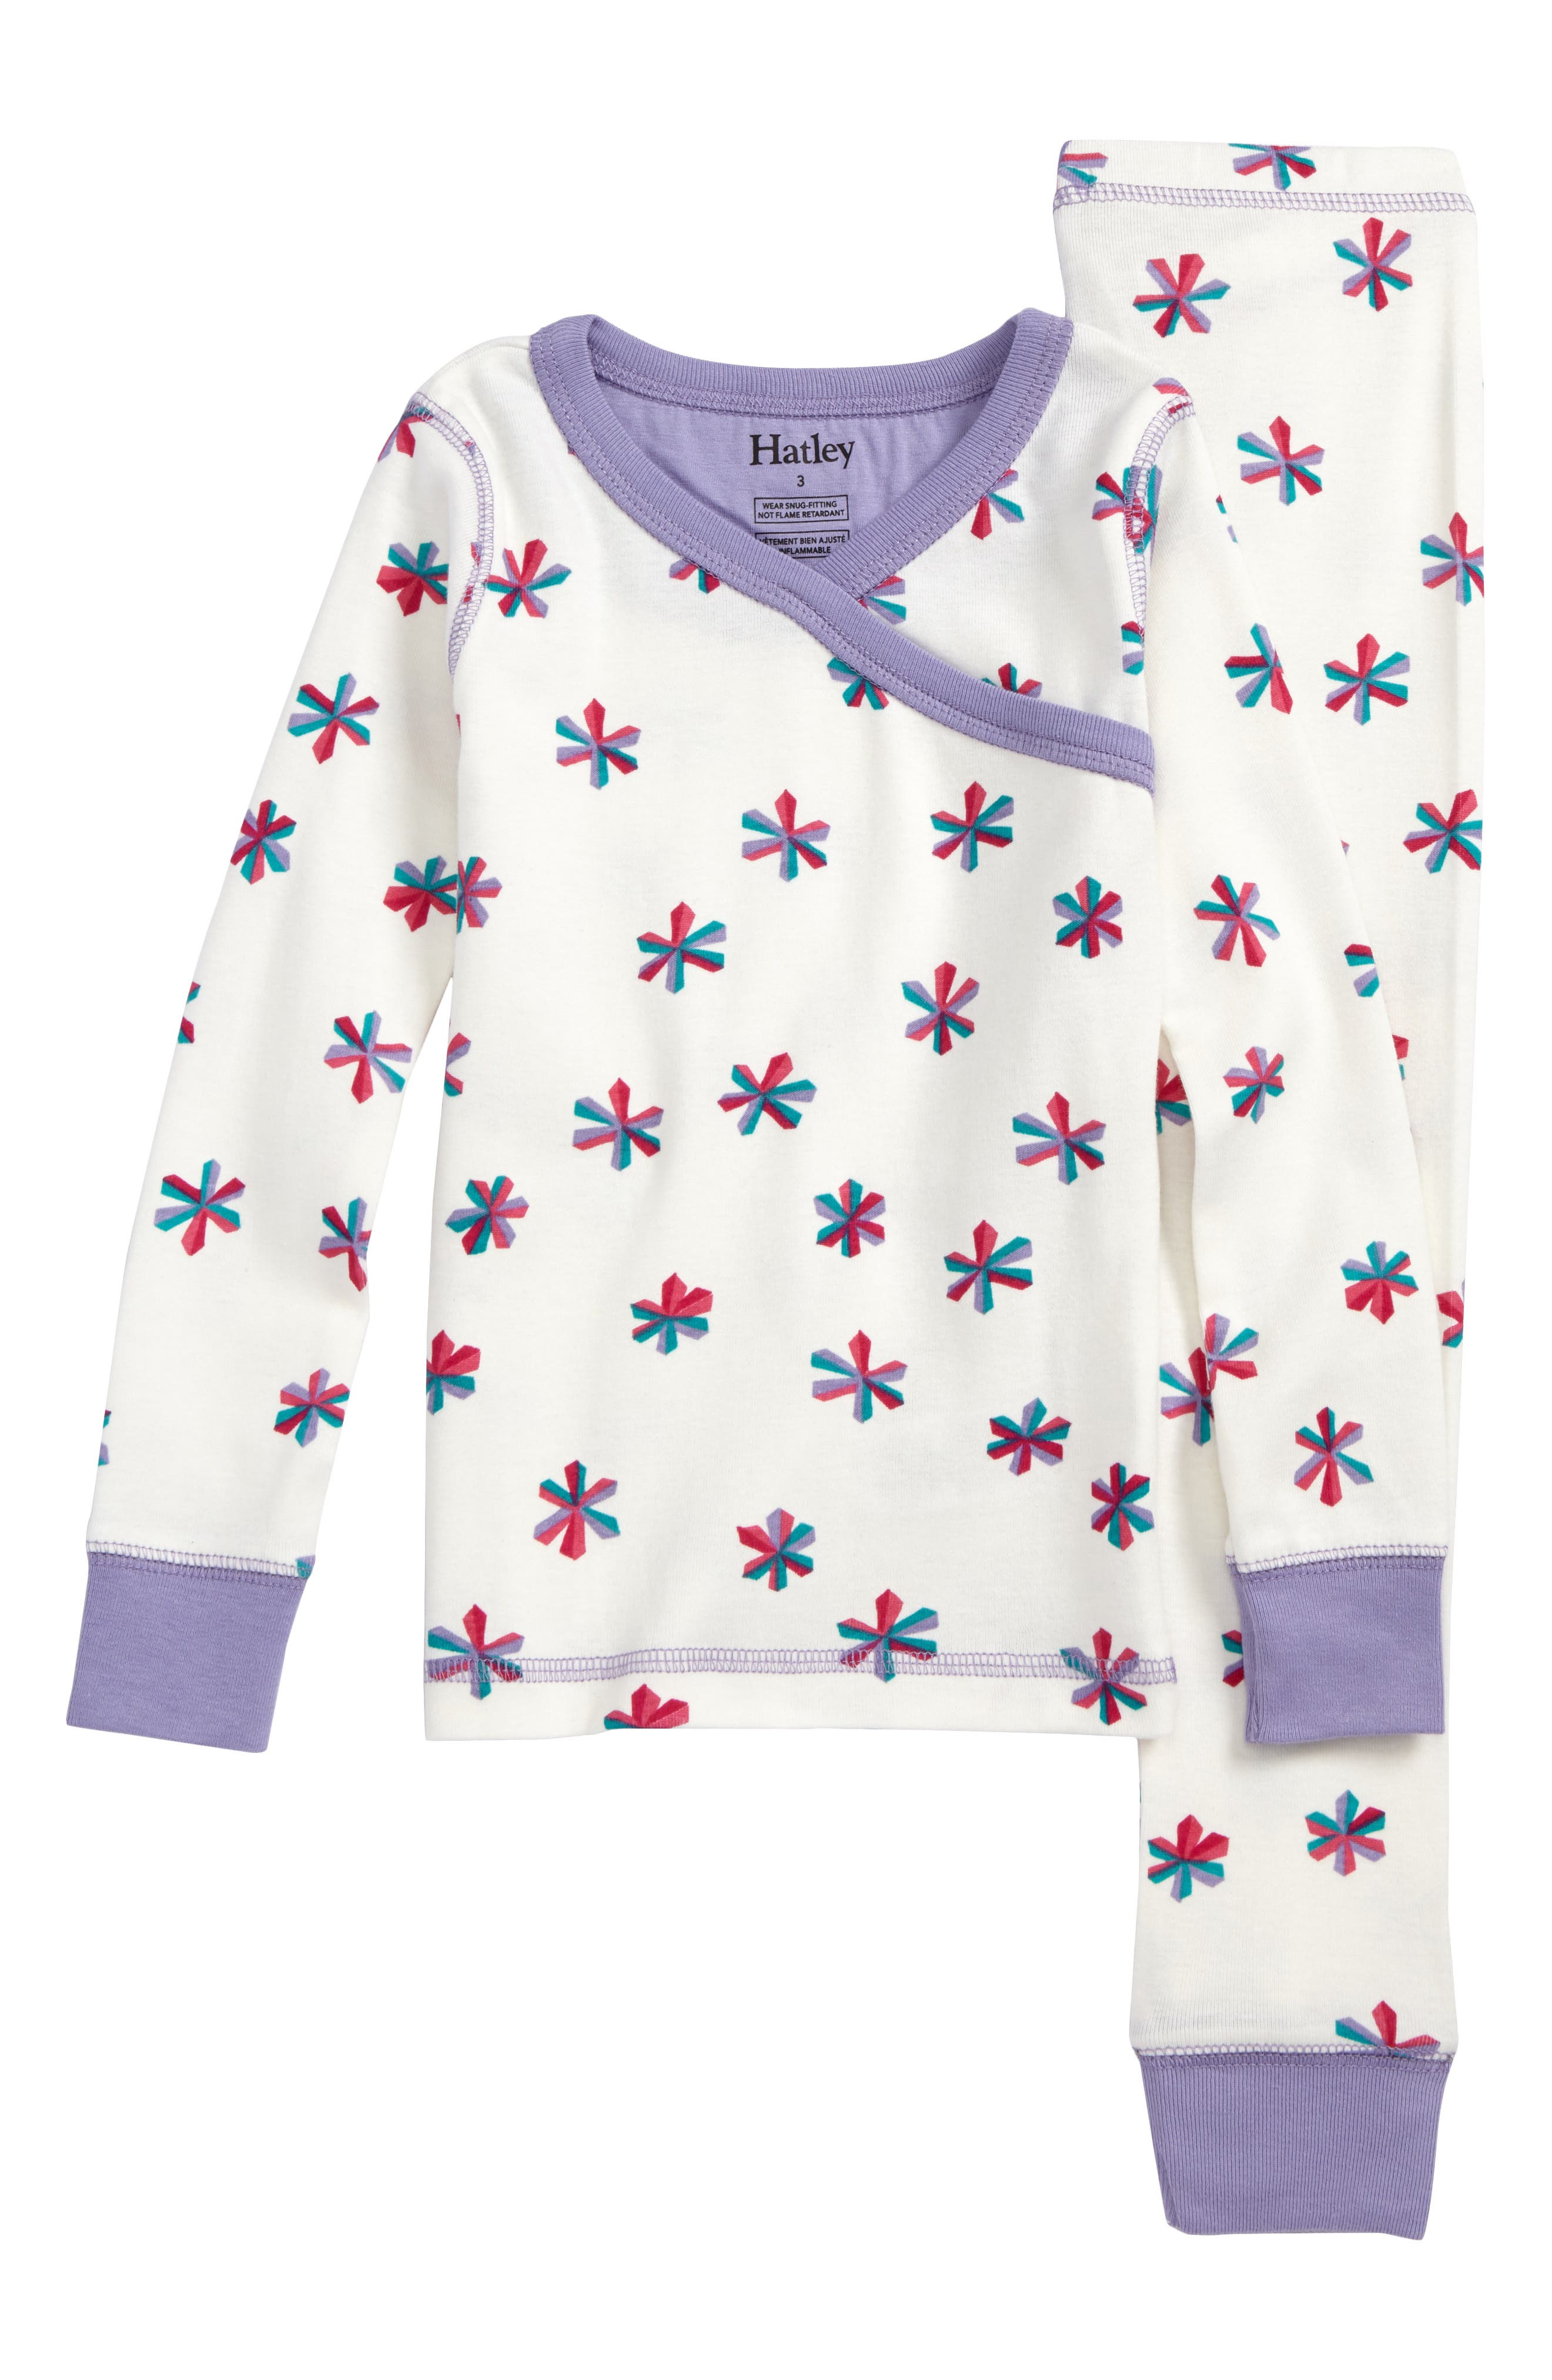 Hatley Snowflake Print Fitted Two-Piece Pajama Set (Toddler Girls, Little Girls & Big Girls)